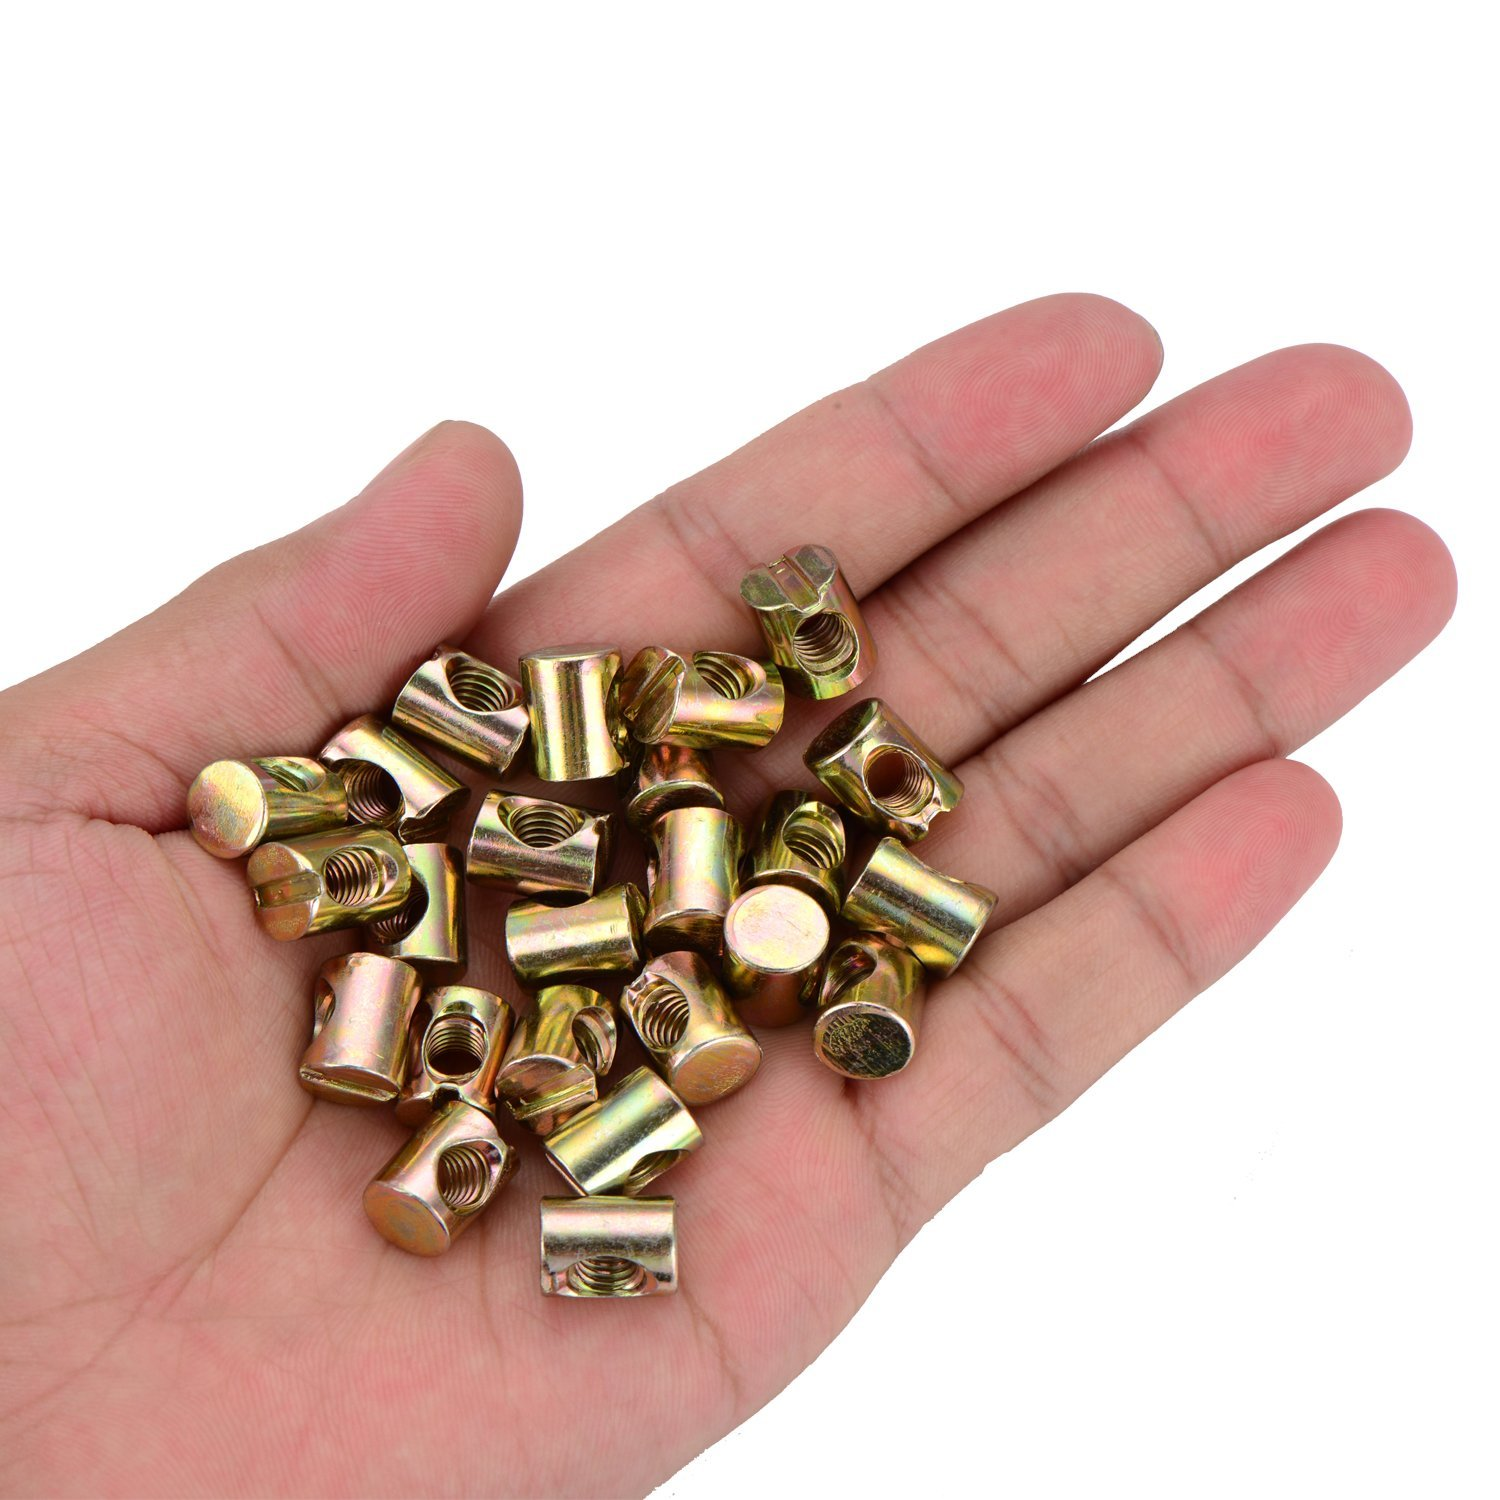 24 pieces M6 Barrel Nuts Cross Dowels Slotted Nuts for Furniture Beds Crib Chairs